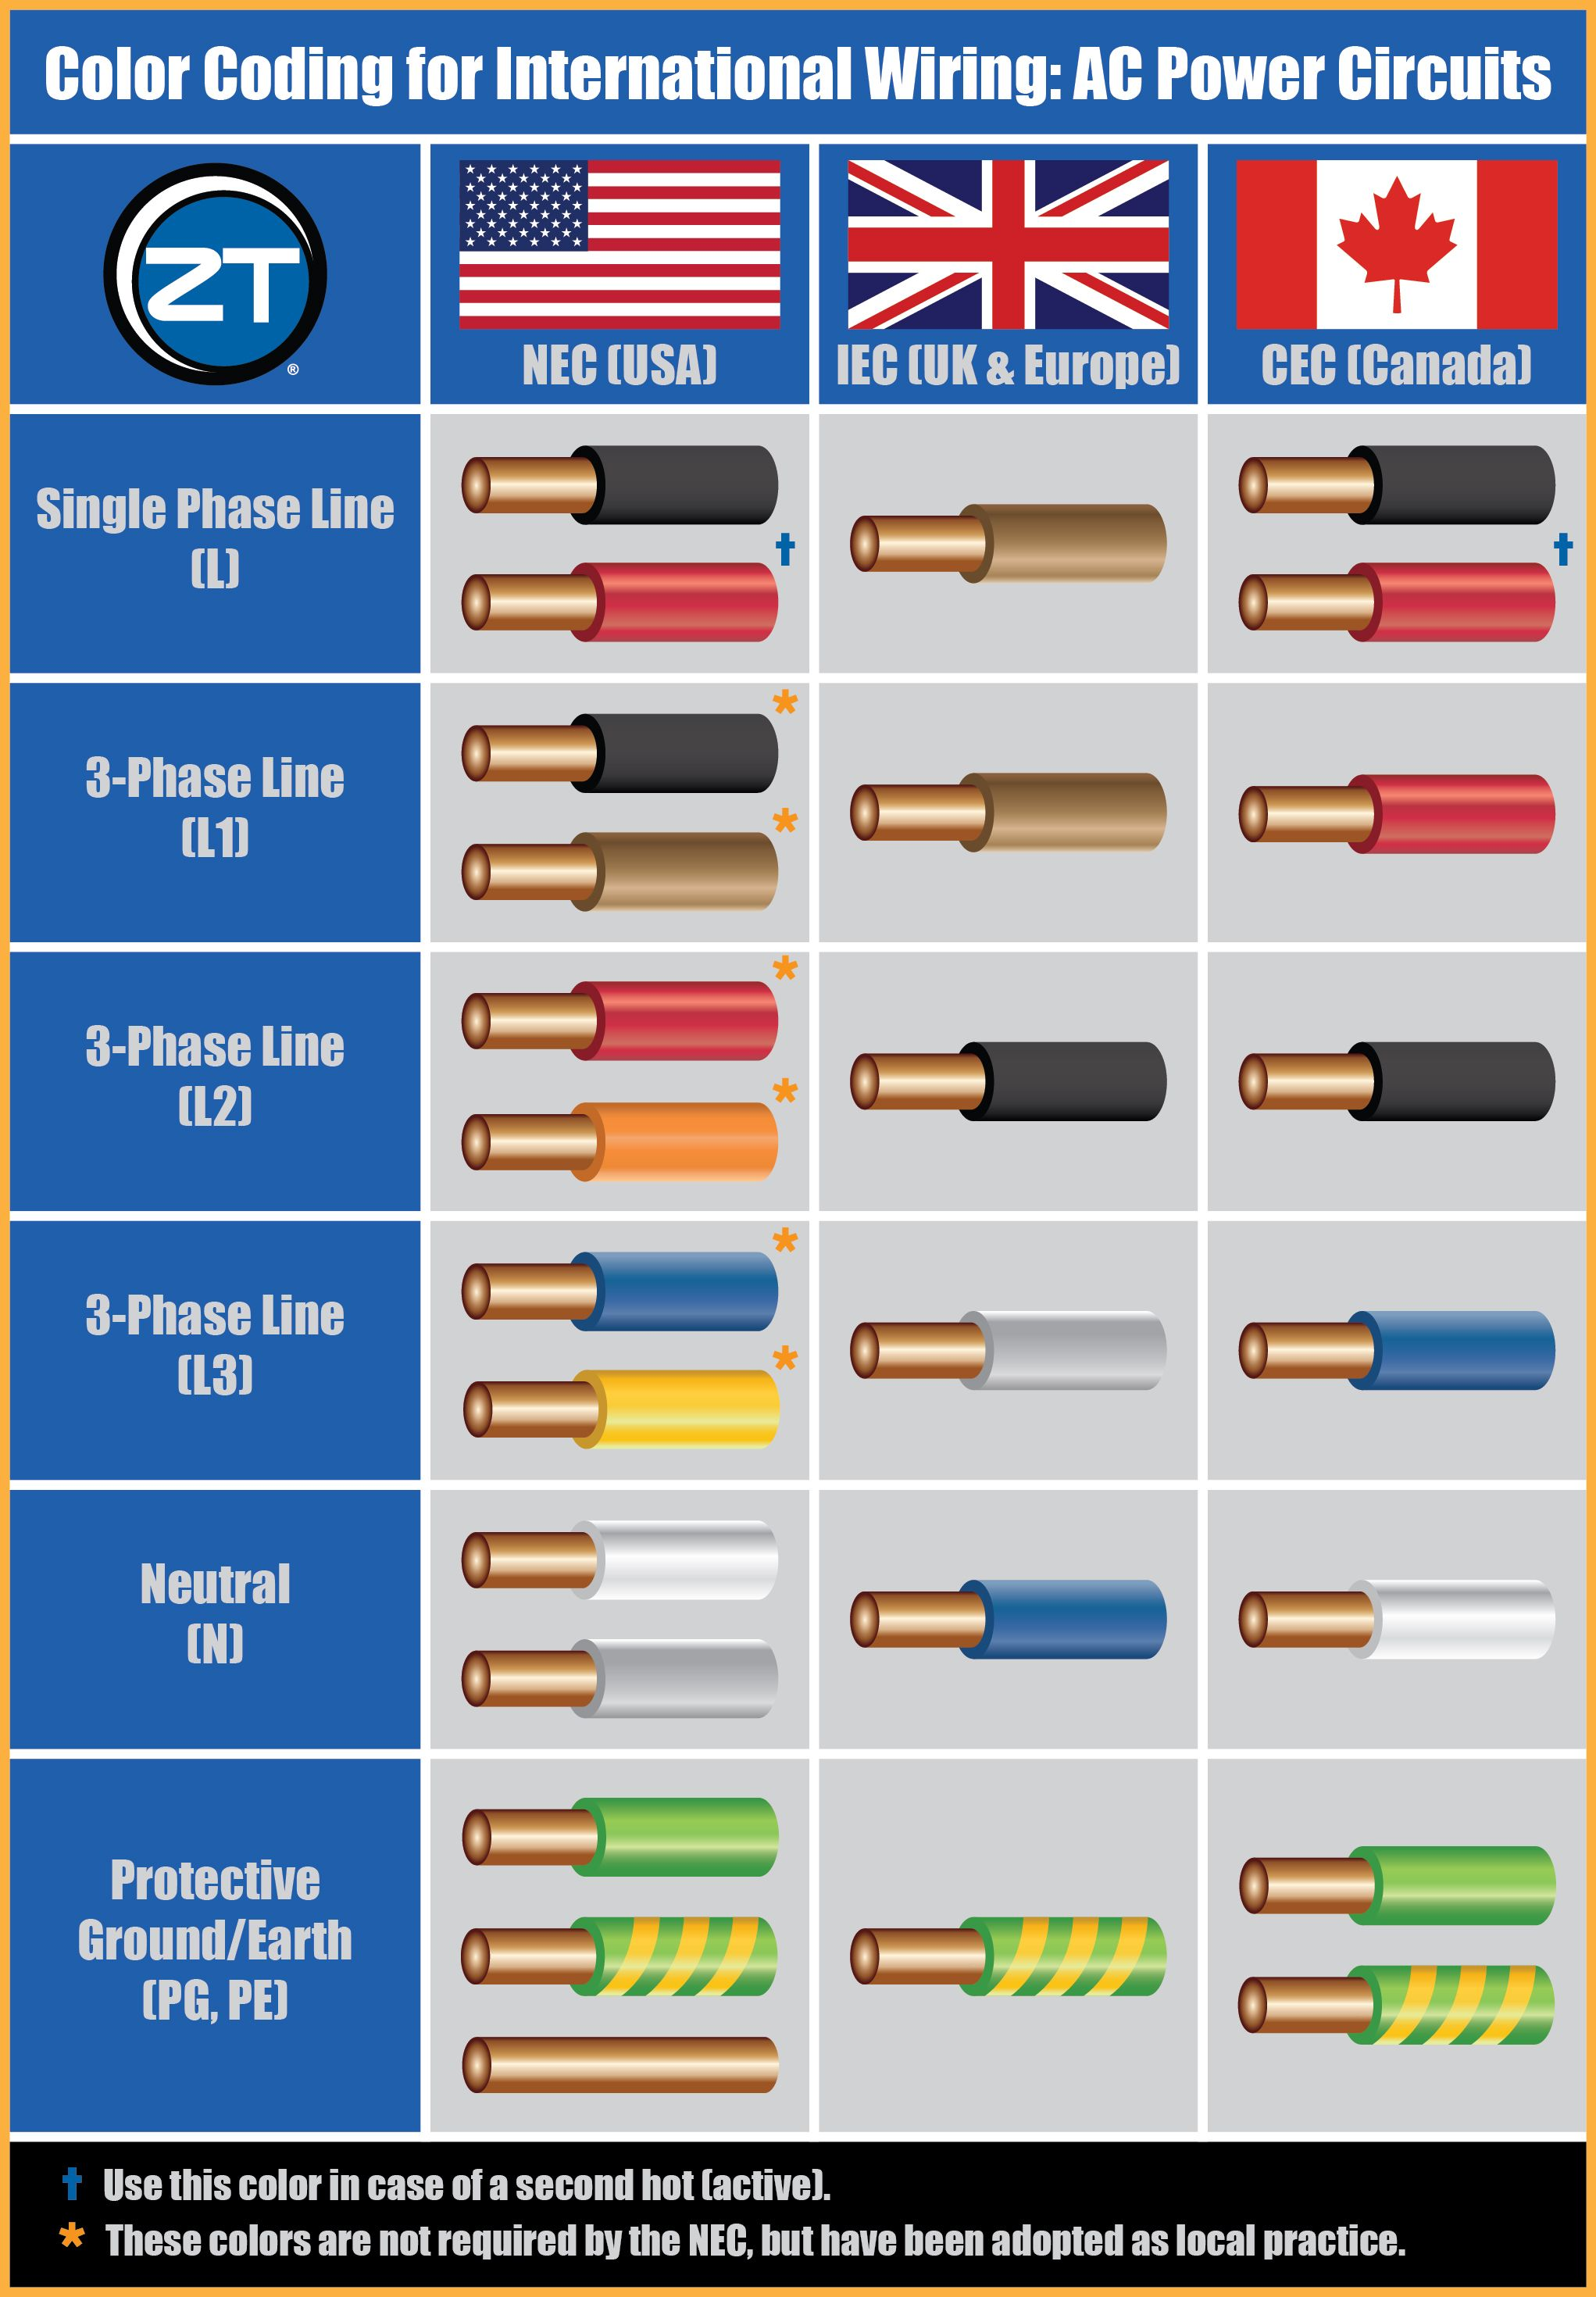 [GJFJ_338]  Guide to Color Coding for International Wiring #international #electrical # wiring #ele… | Home electrical wiring, Electrical wiring colours,  Electrical installation | House Wiring Colors |  | Pinterest